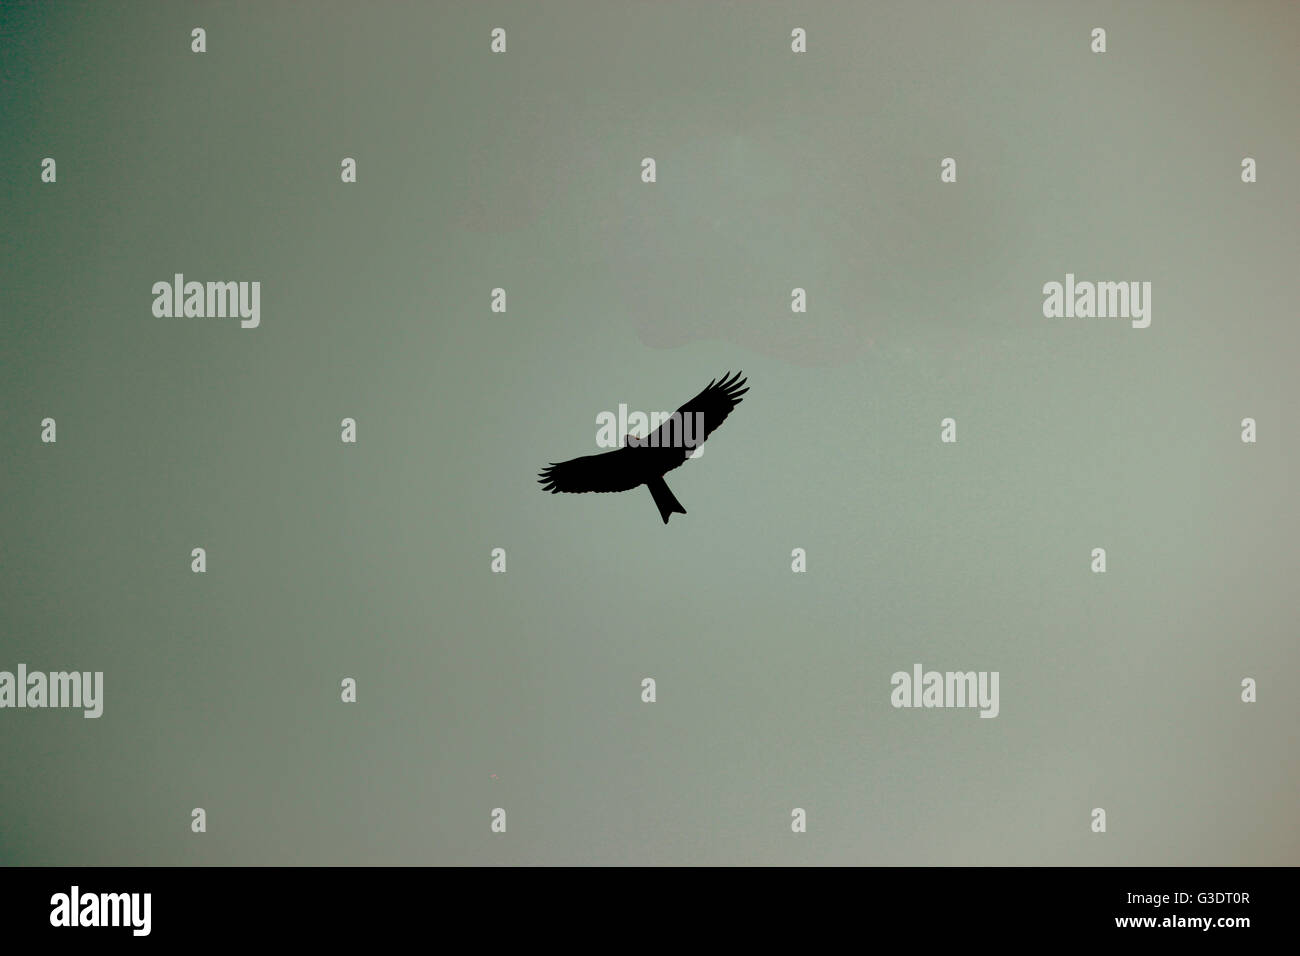 Silhouette of high flying eagle bird soaring up in the evening sky - Stock Image